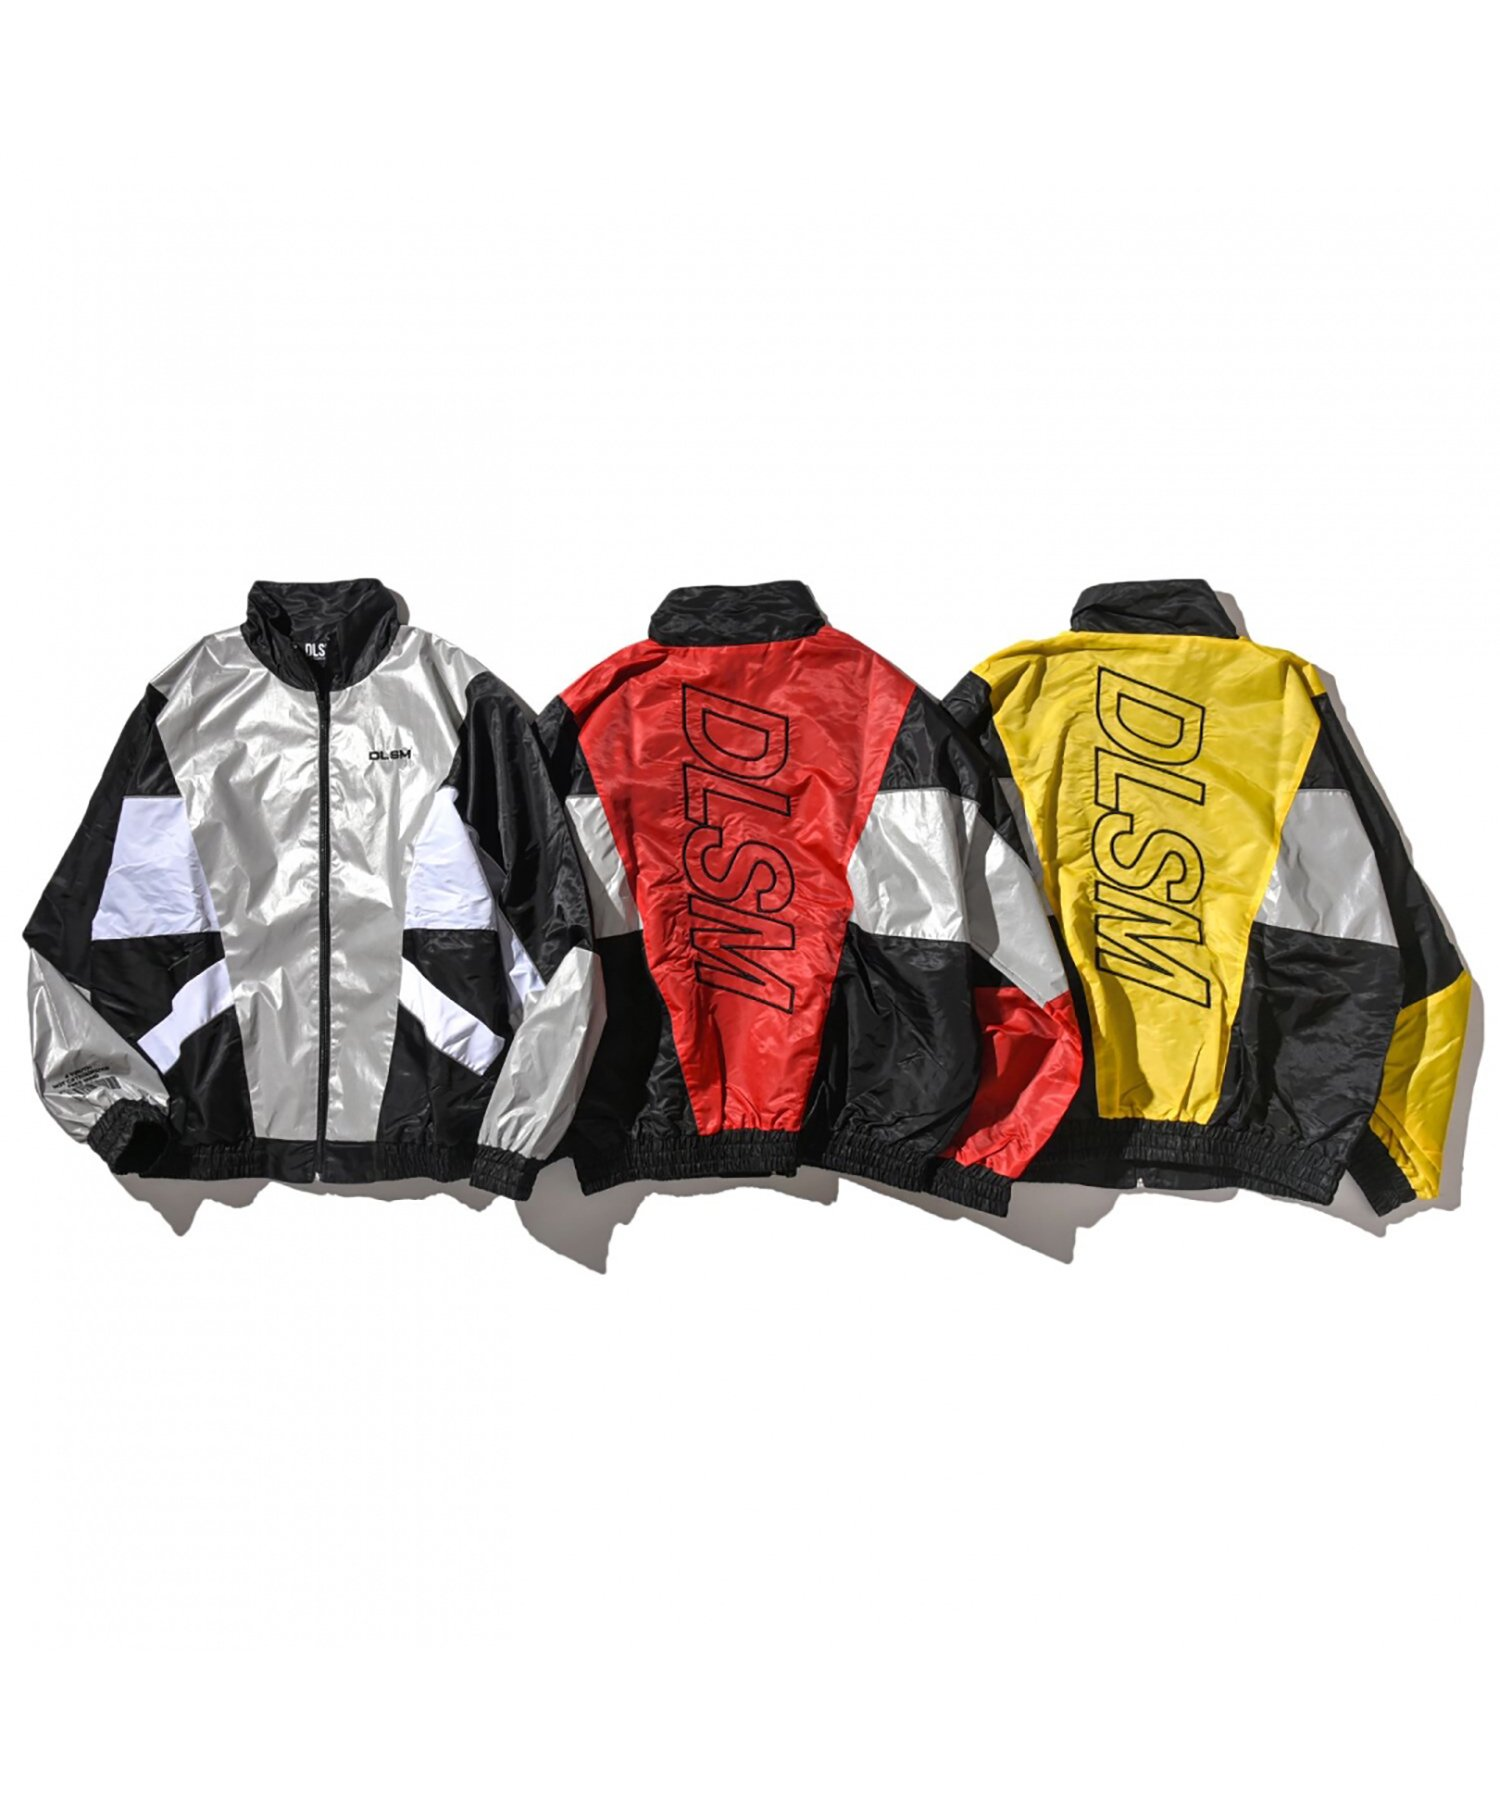 DLSM NYLON REFLECT CUTTING TRUCK JACKET